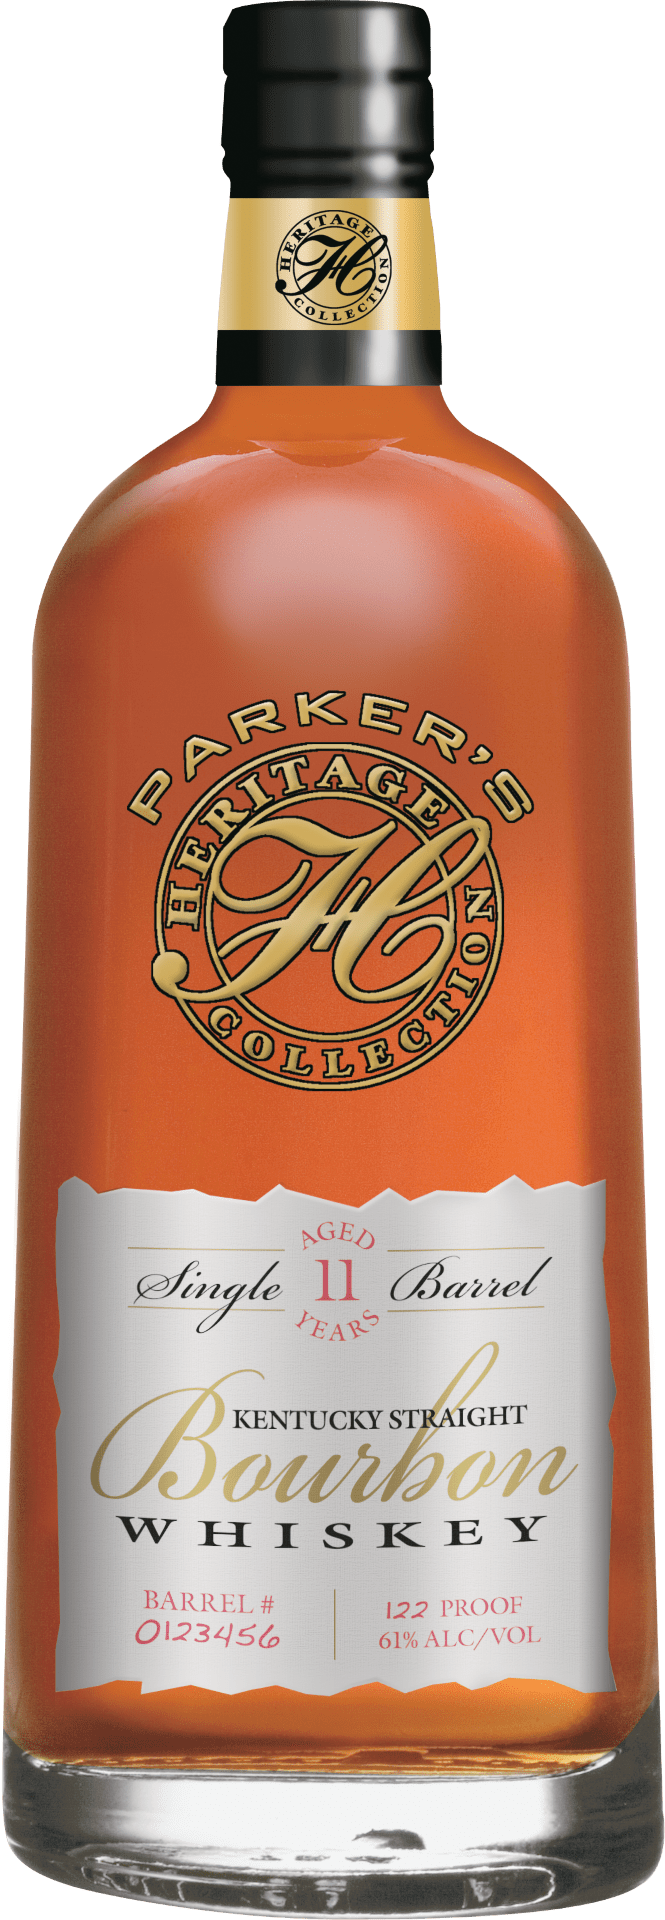 Parker's Heritage Collection Single Barrel Bourbon 11 Years Old (2017)